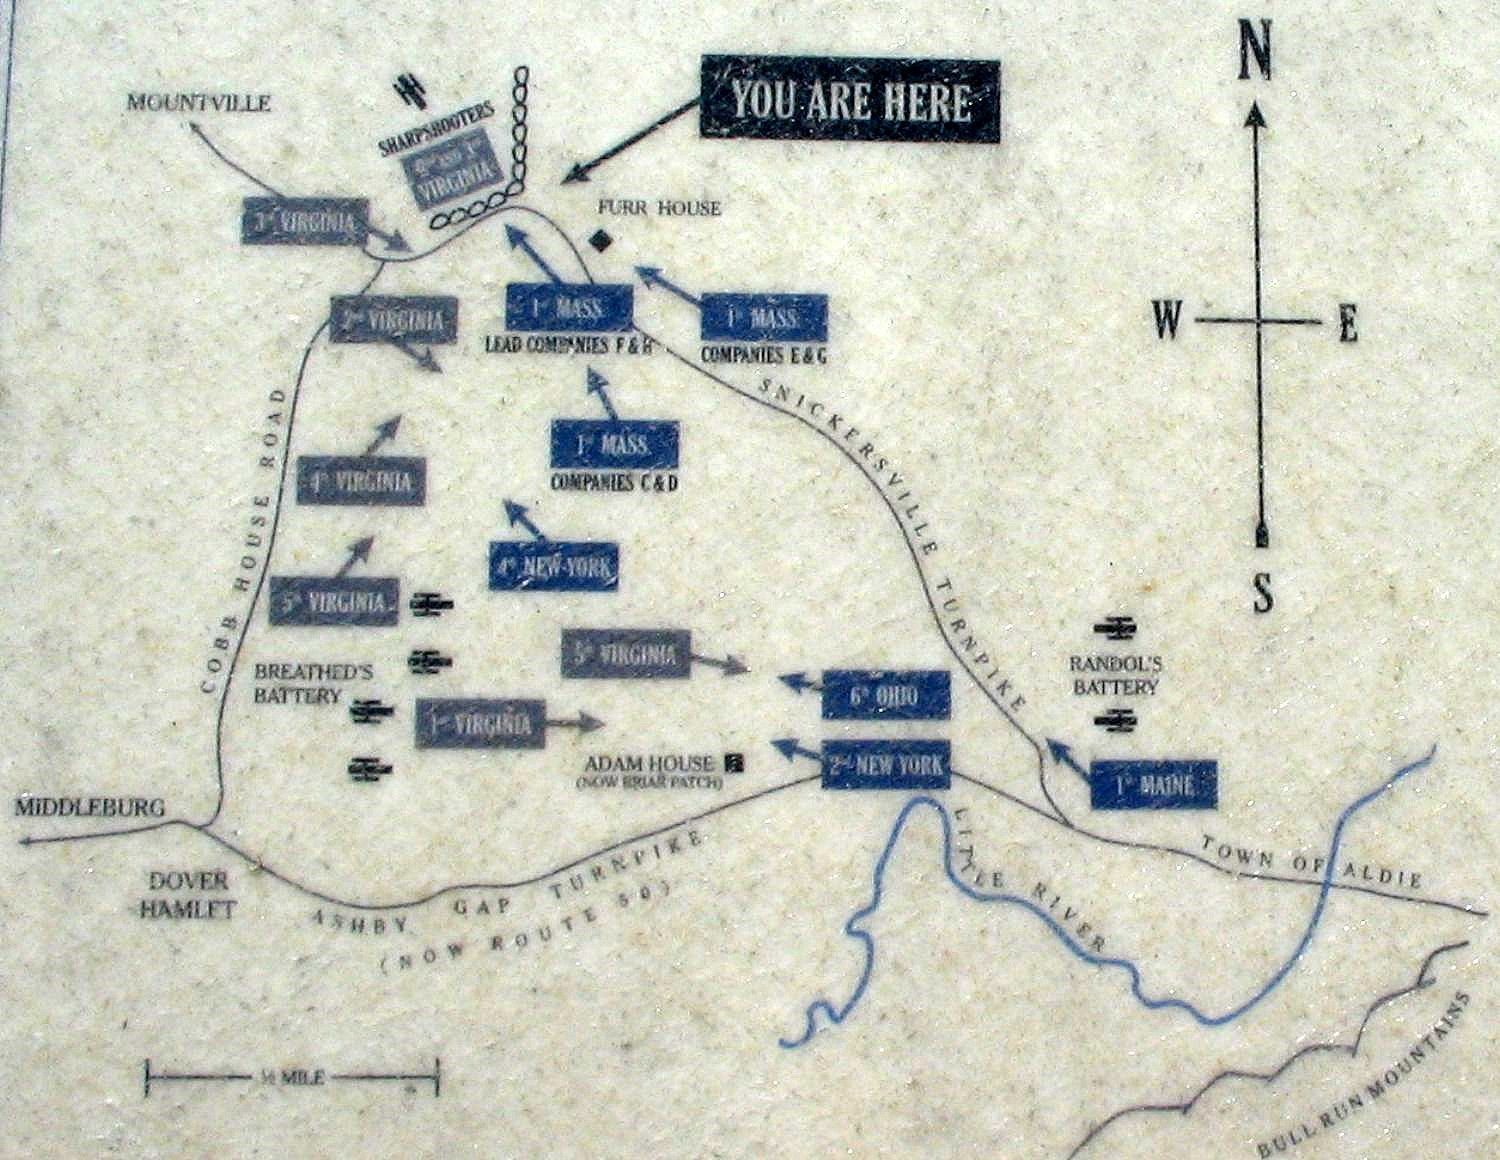 Detail Map from the Marker